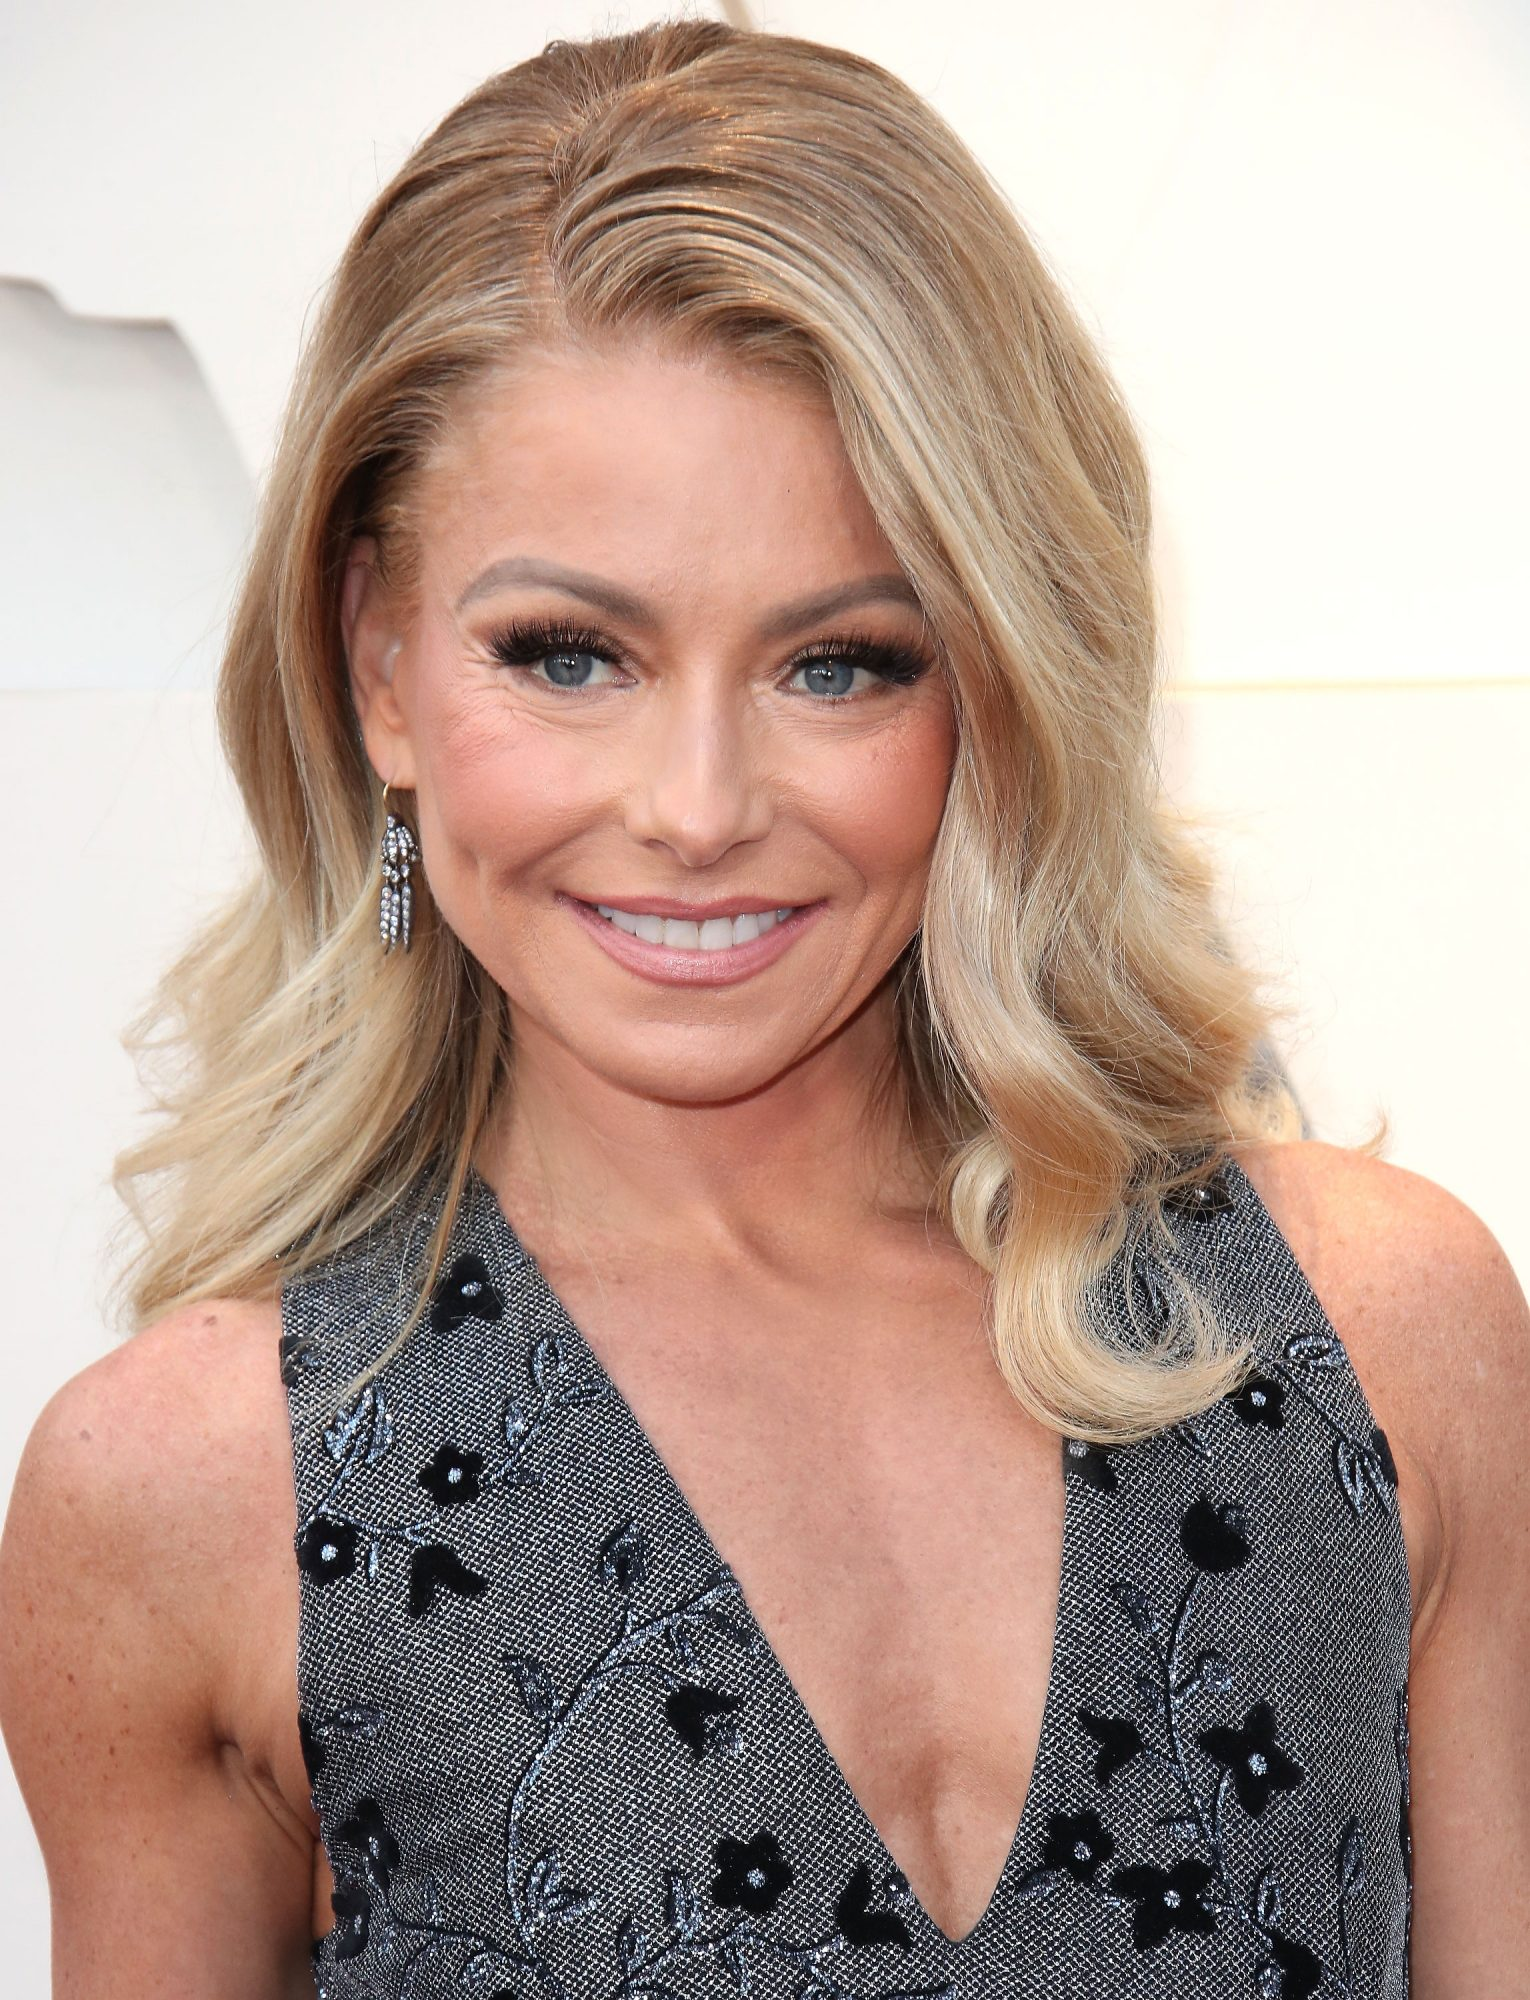 Kelly Ripa's Root Touch Up Secret from L'Oreal